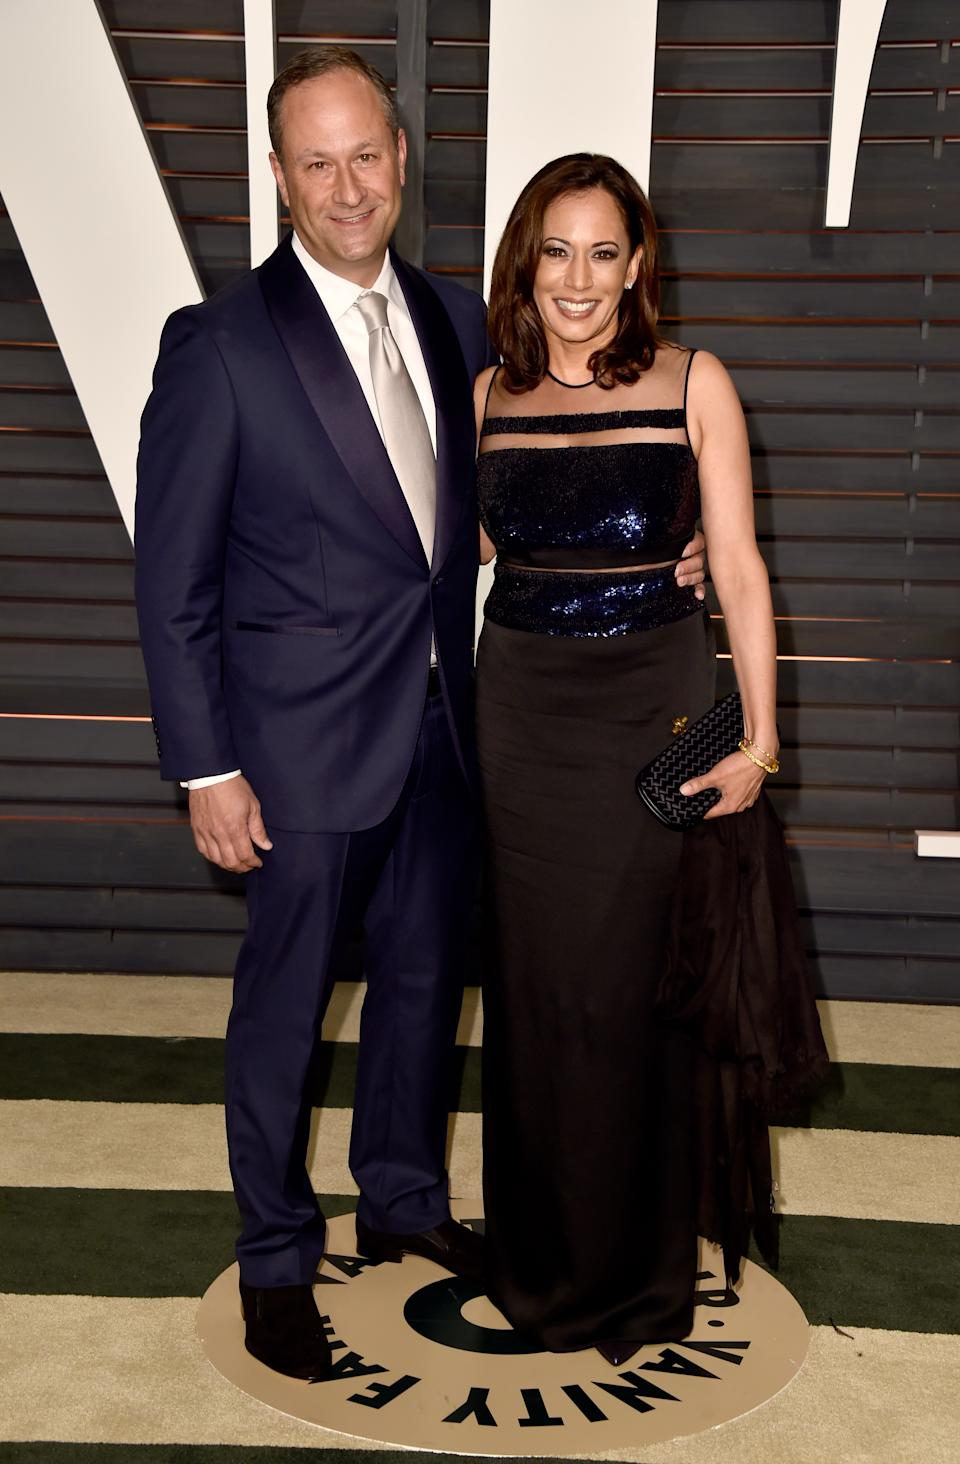 BEVERLY HILLS, CA - FEBRUARY 22:  Attorney Douglas Emhoff (L) and California Attorney General Kamala Harris attend the 2015 Vanity Fair Oscar Party hosted by Graydon Carter at Wallis Annenberg Center for the Performing Arts on February 22, 2015 in Beverly Hills, California.  (Photo by Pascal Le Segretain/Getty Images)